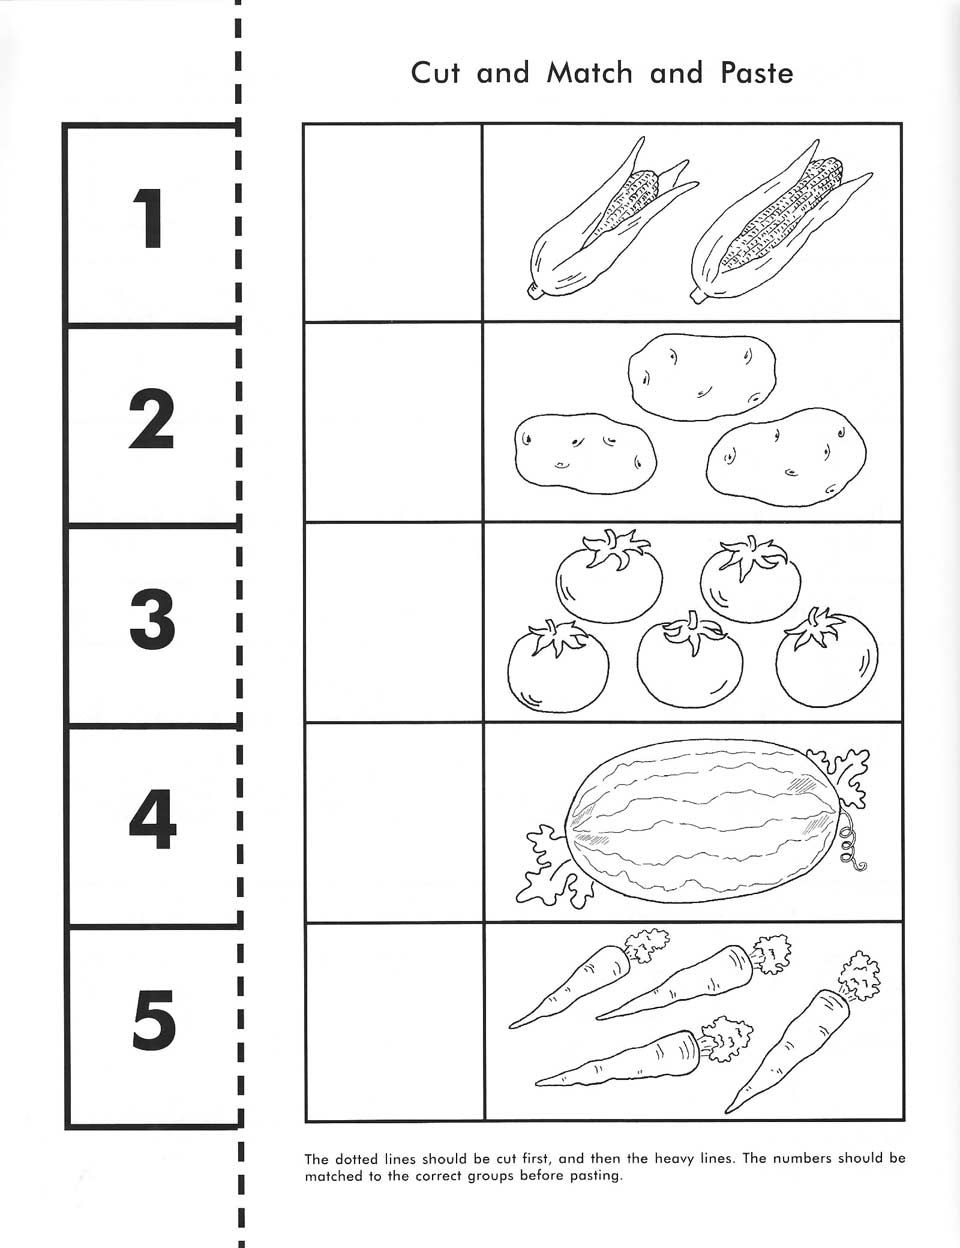 Pin On Pre-K Math in Letter Matching Worksheets Cut And Paste